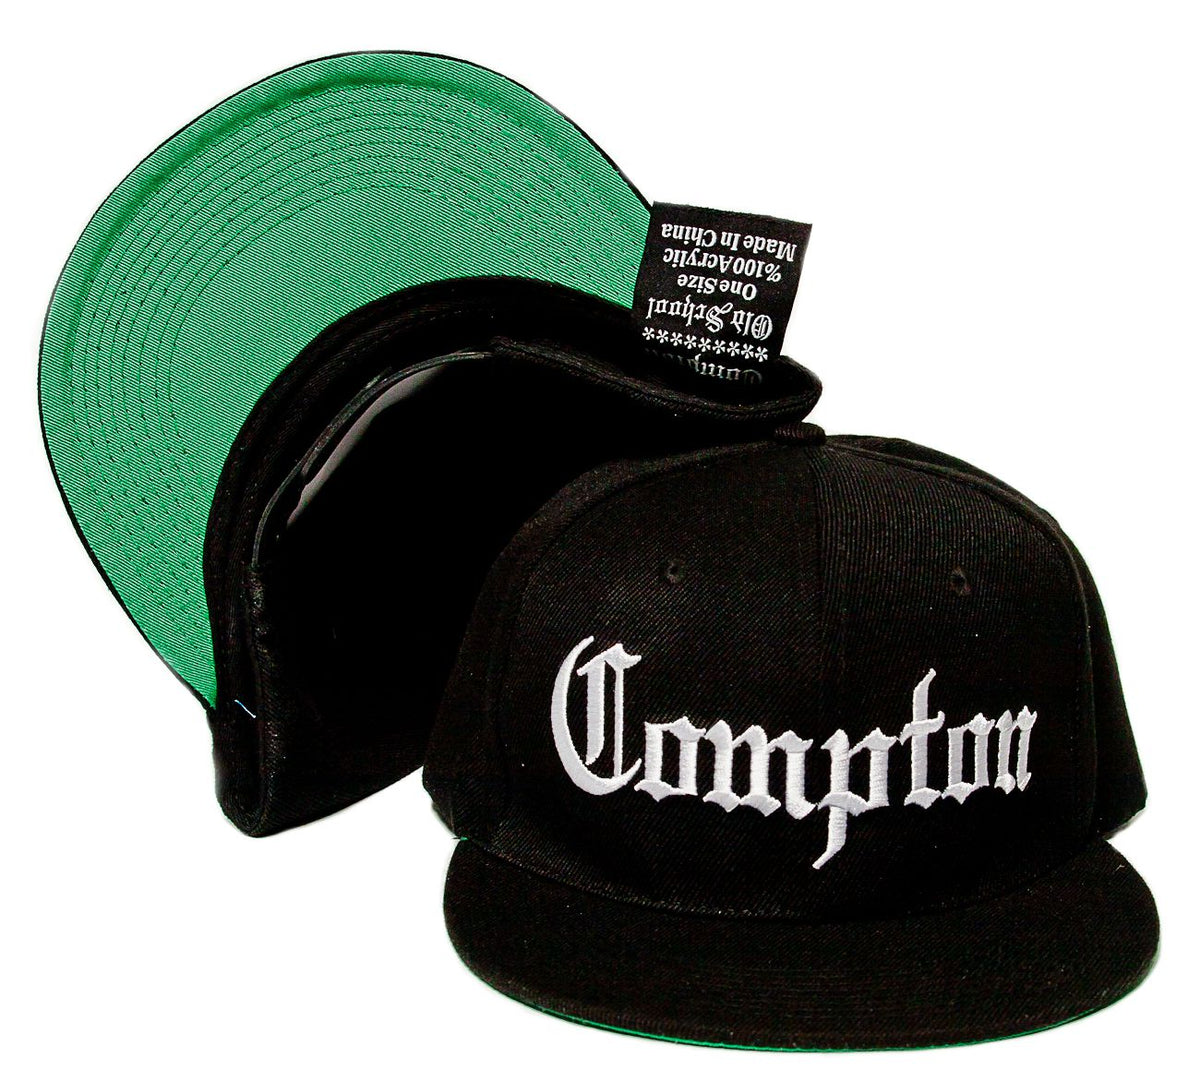 2c13d05be30af8 COMPTON Embroidered Acrylic Flat Bill OLD SCHOOL Hat Cap Gangsta Eazy –  capenvy.com